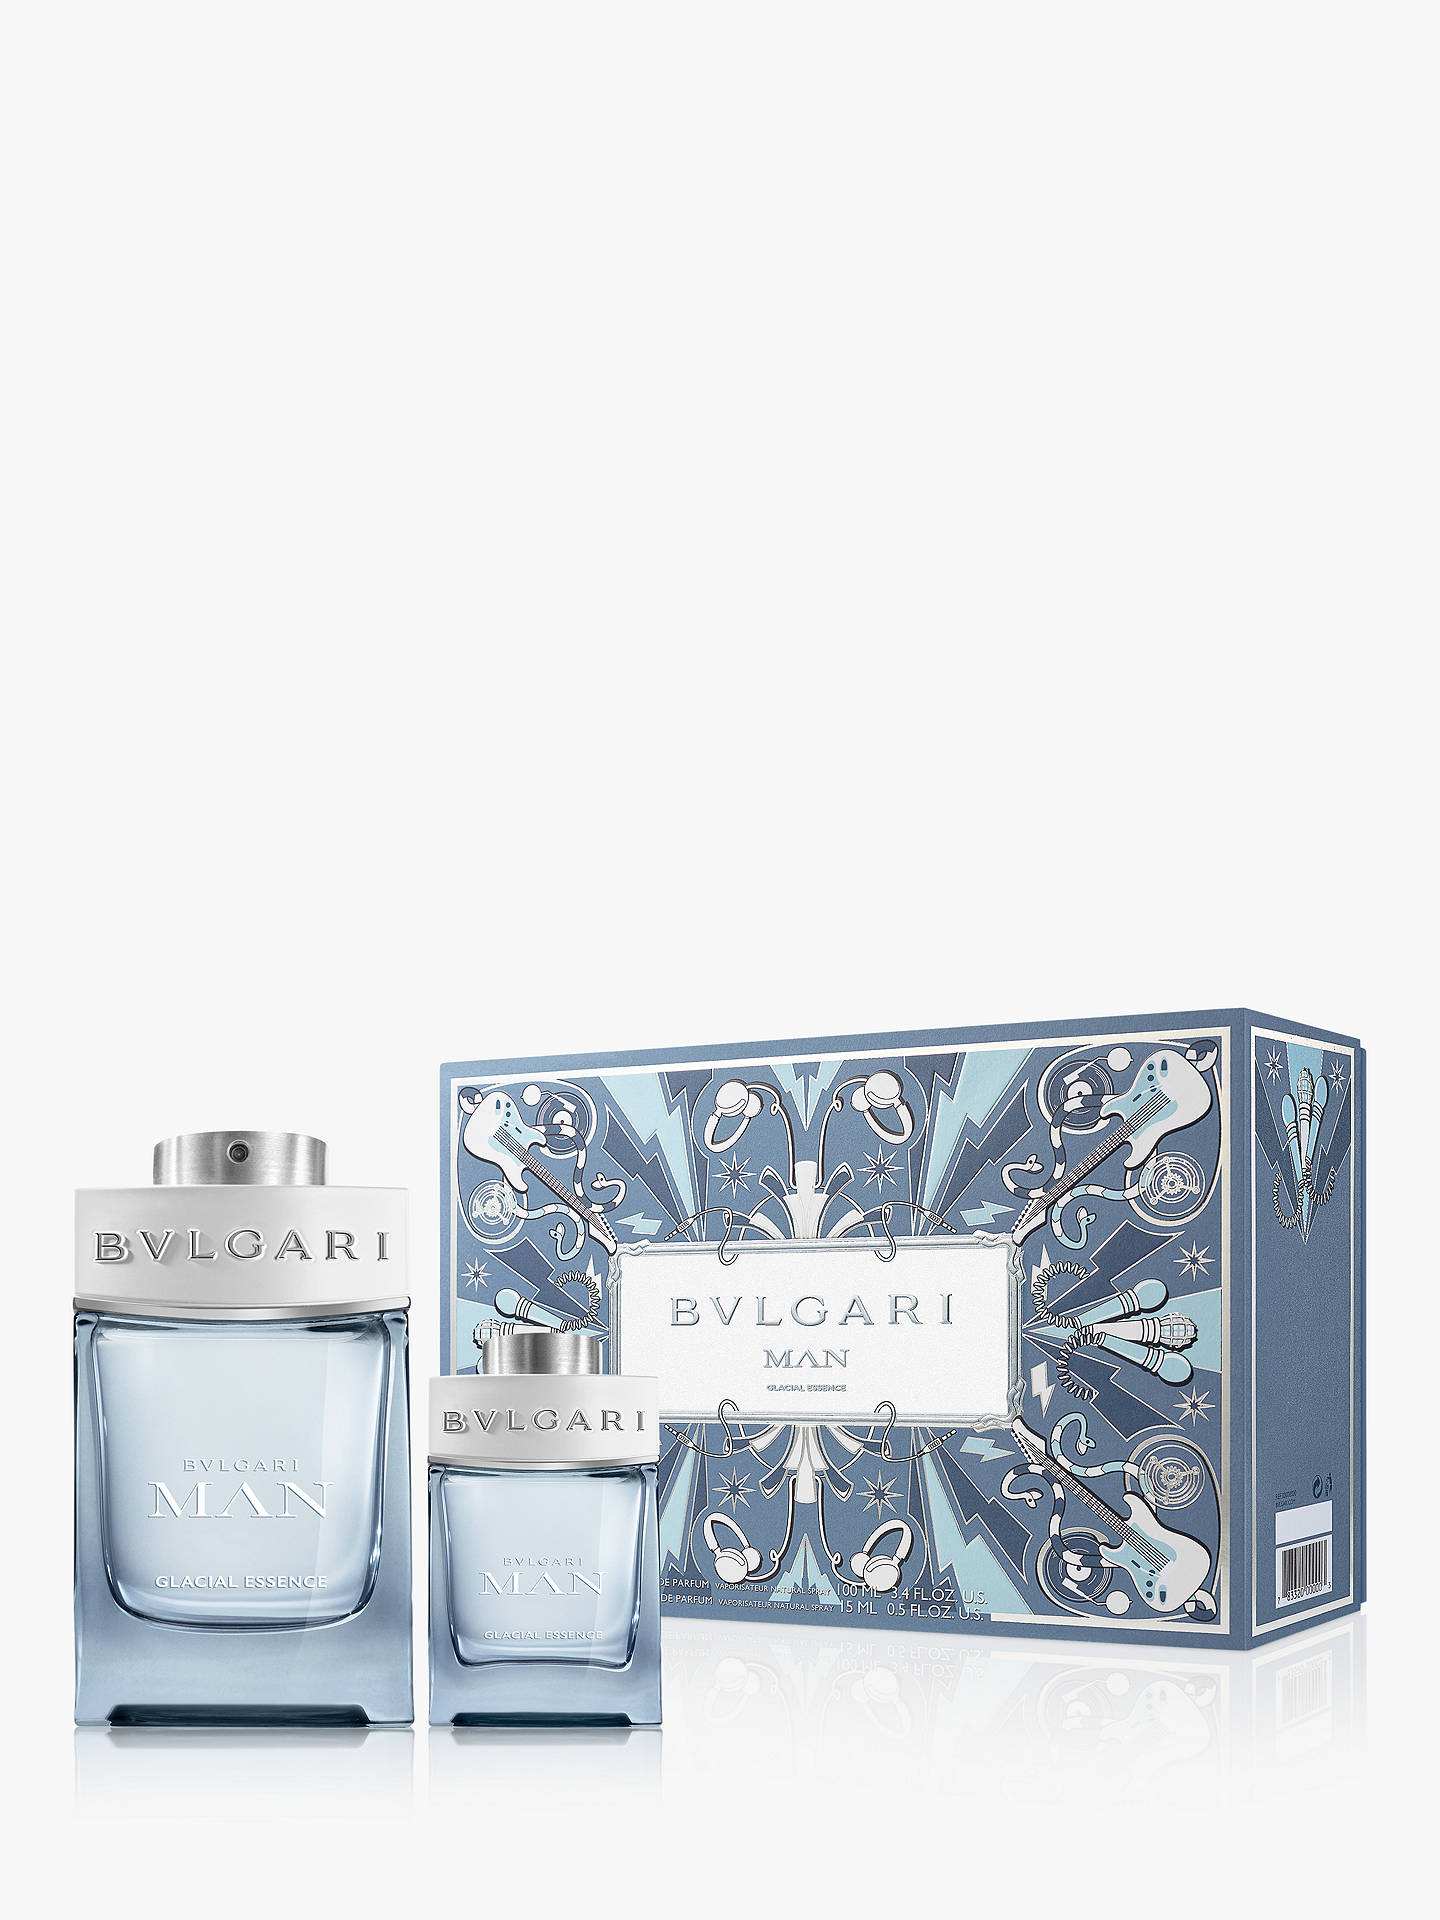 Buy BVLGARI Man Glacial Essence Eau de Parfum 100ml Fragrance Gift Set Online at johnlewis.com